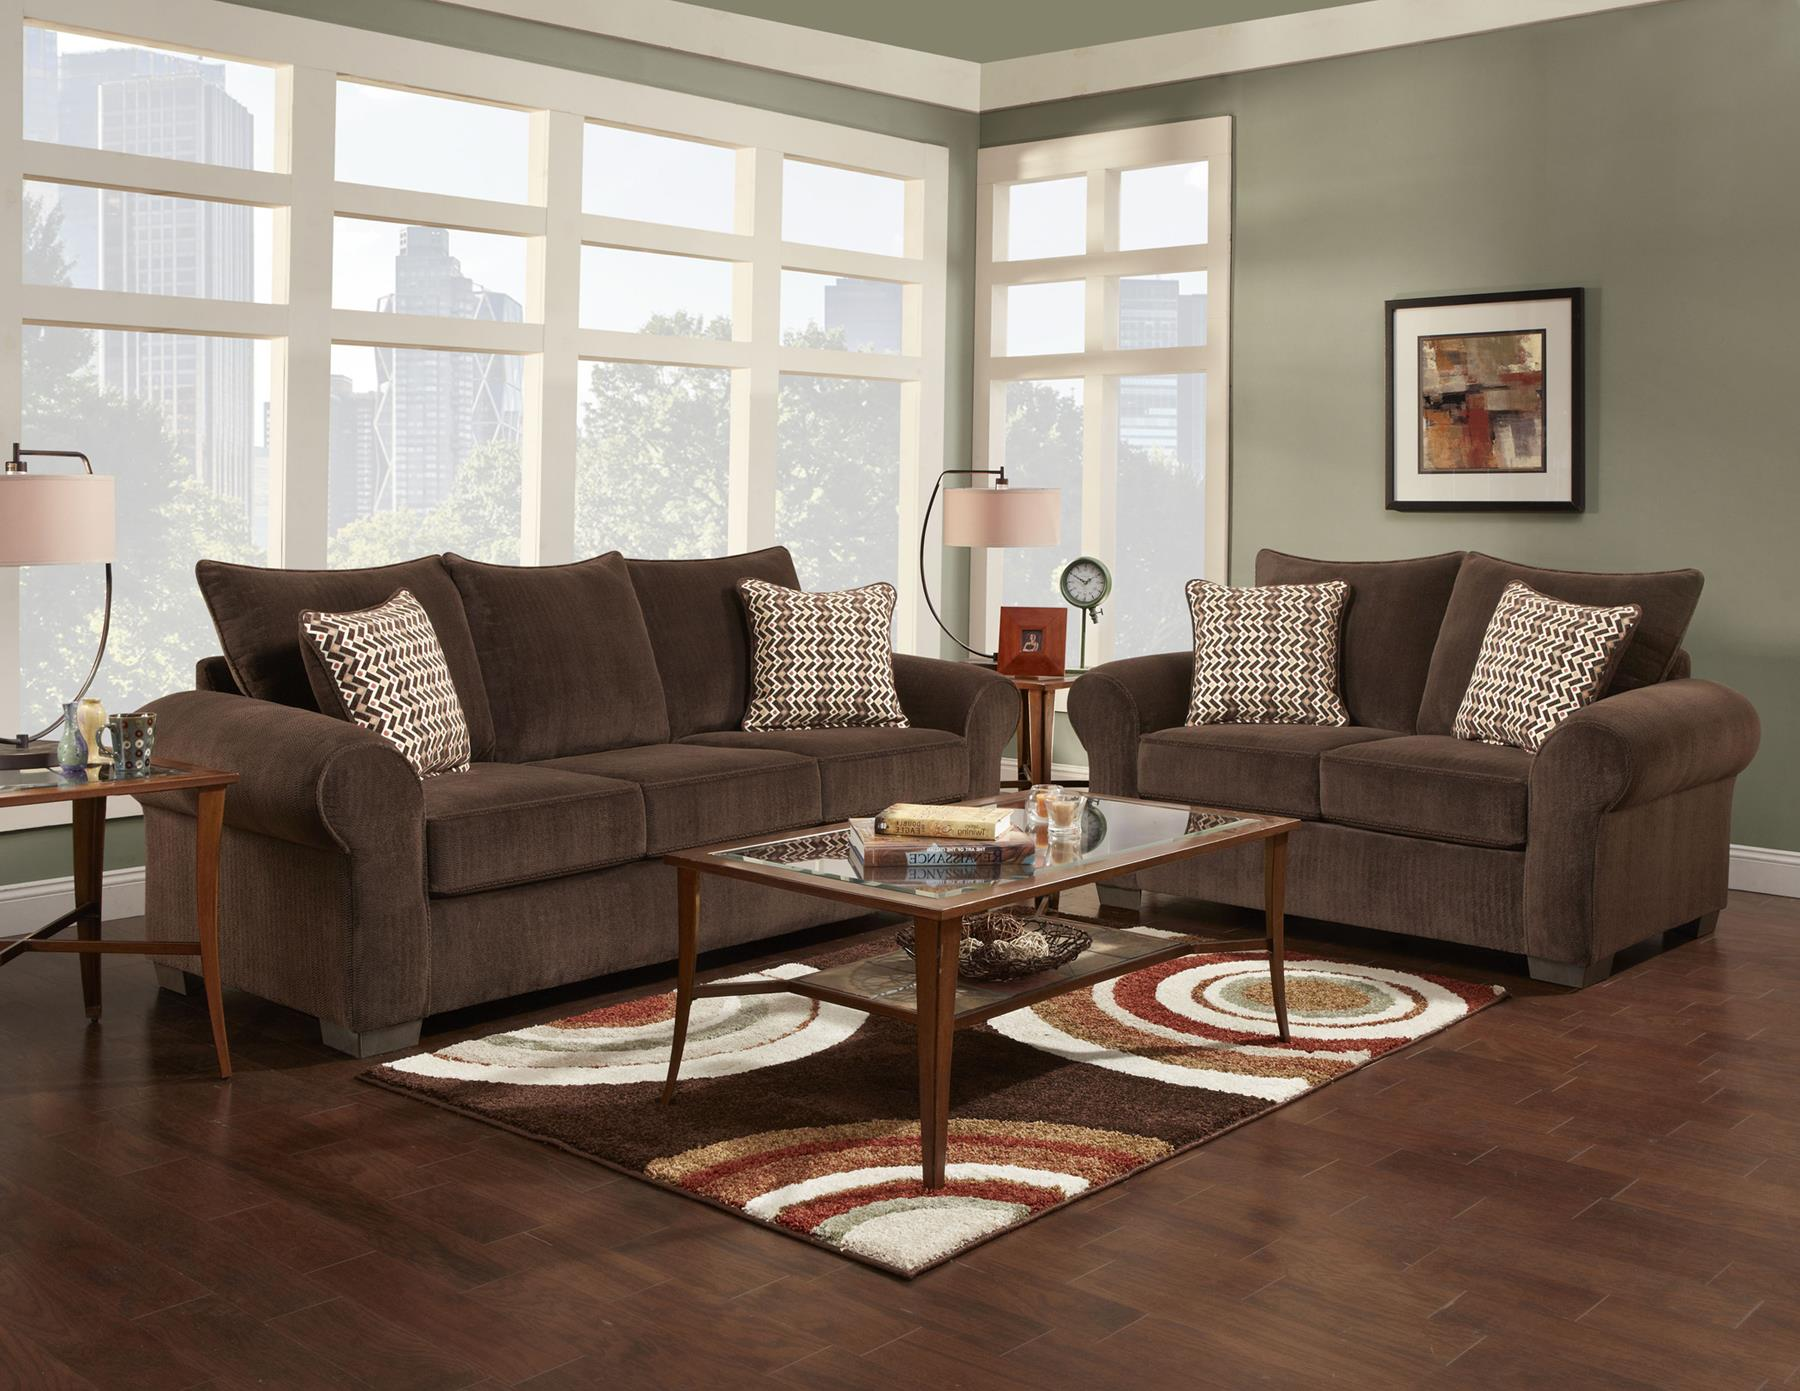 Affordable Furniture 7300 Stationary Living Room Group - Item Number: 7300 Living Room Group 1